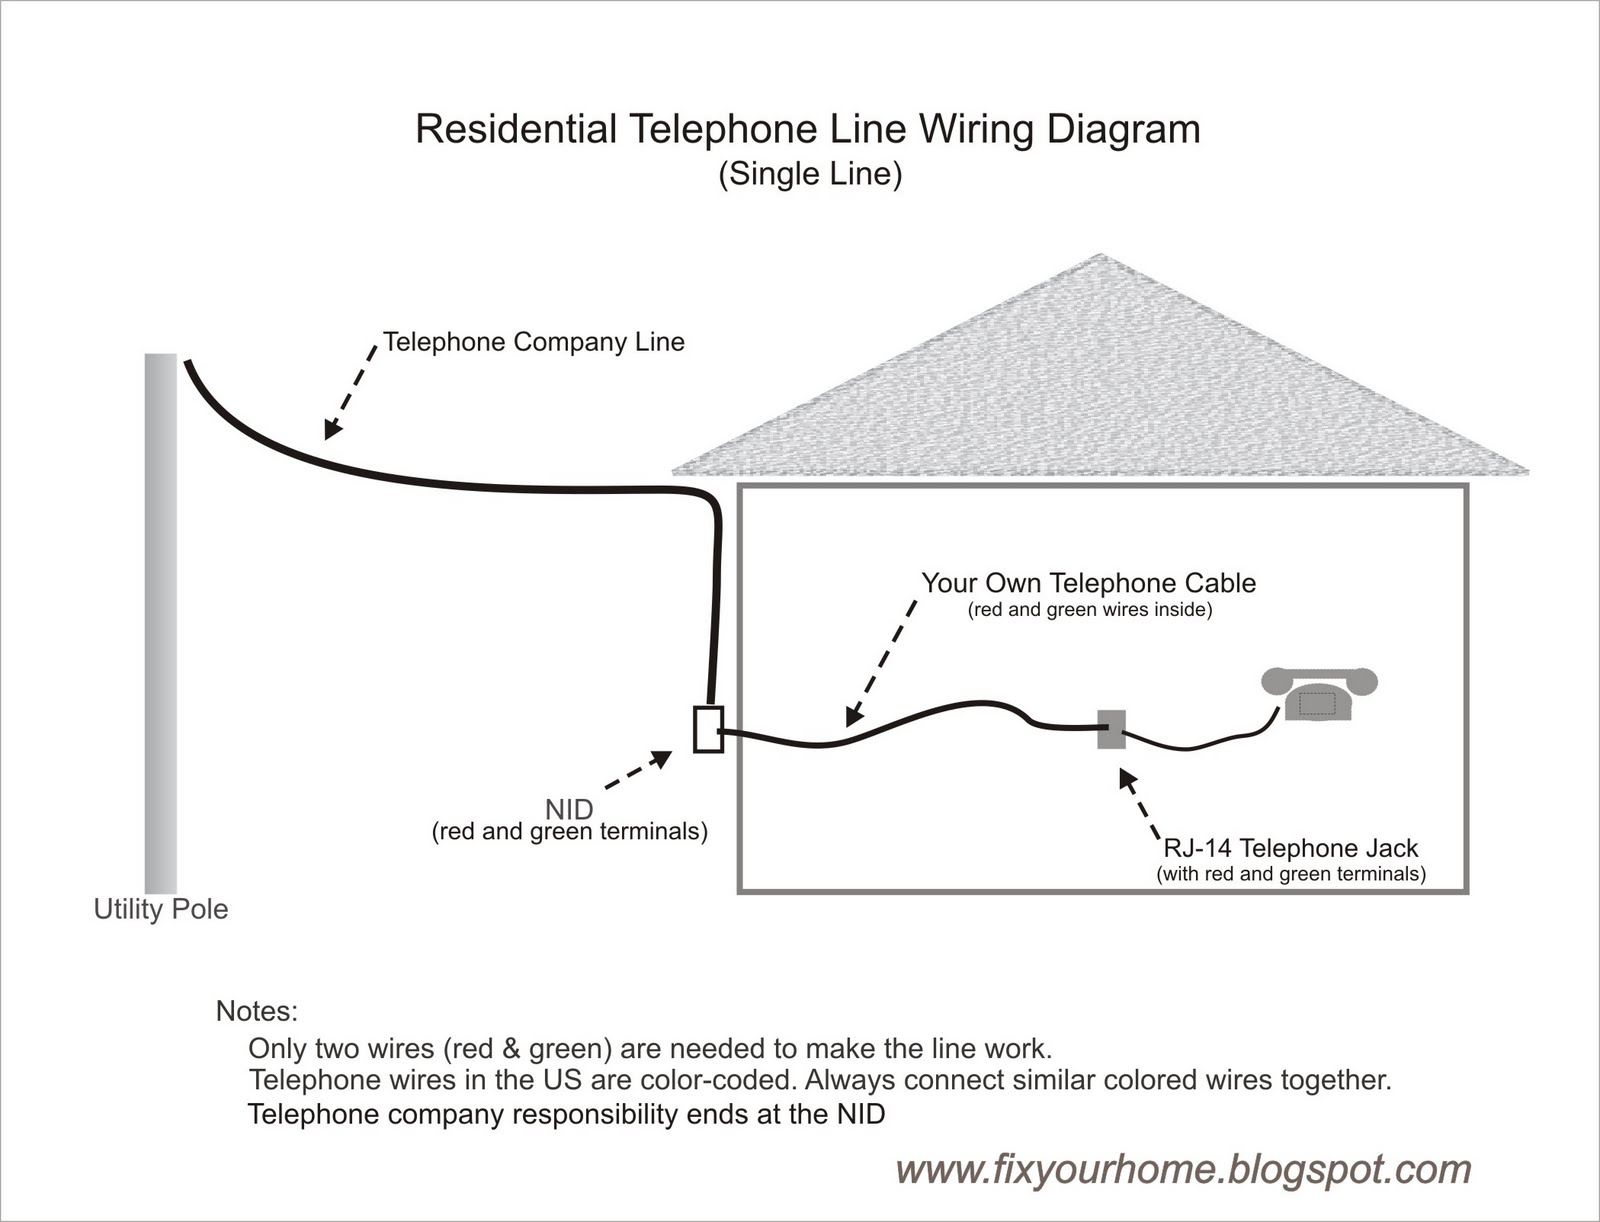 Fix Your Home: How To Wire Your Own Telephone Line